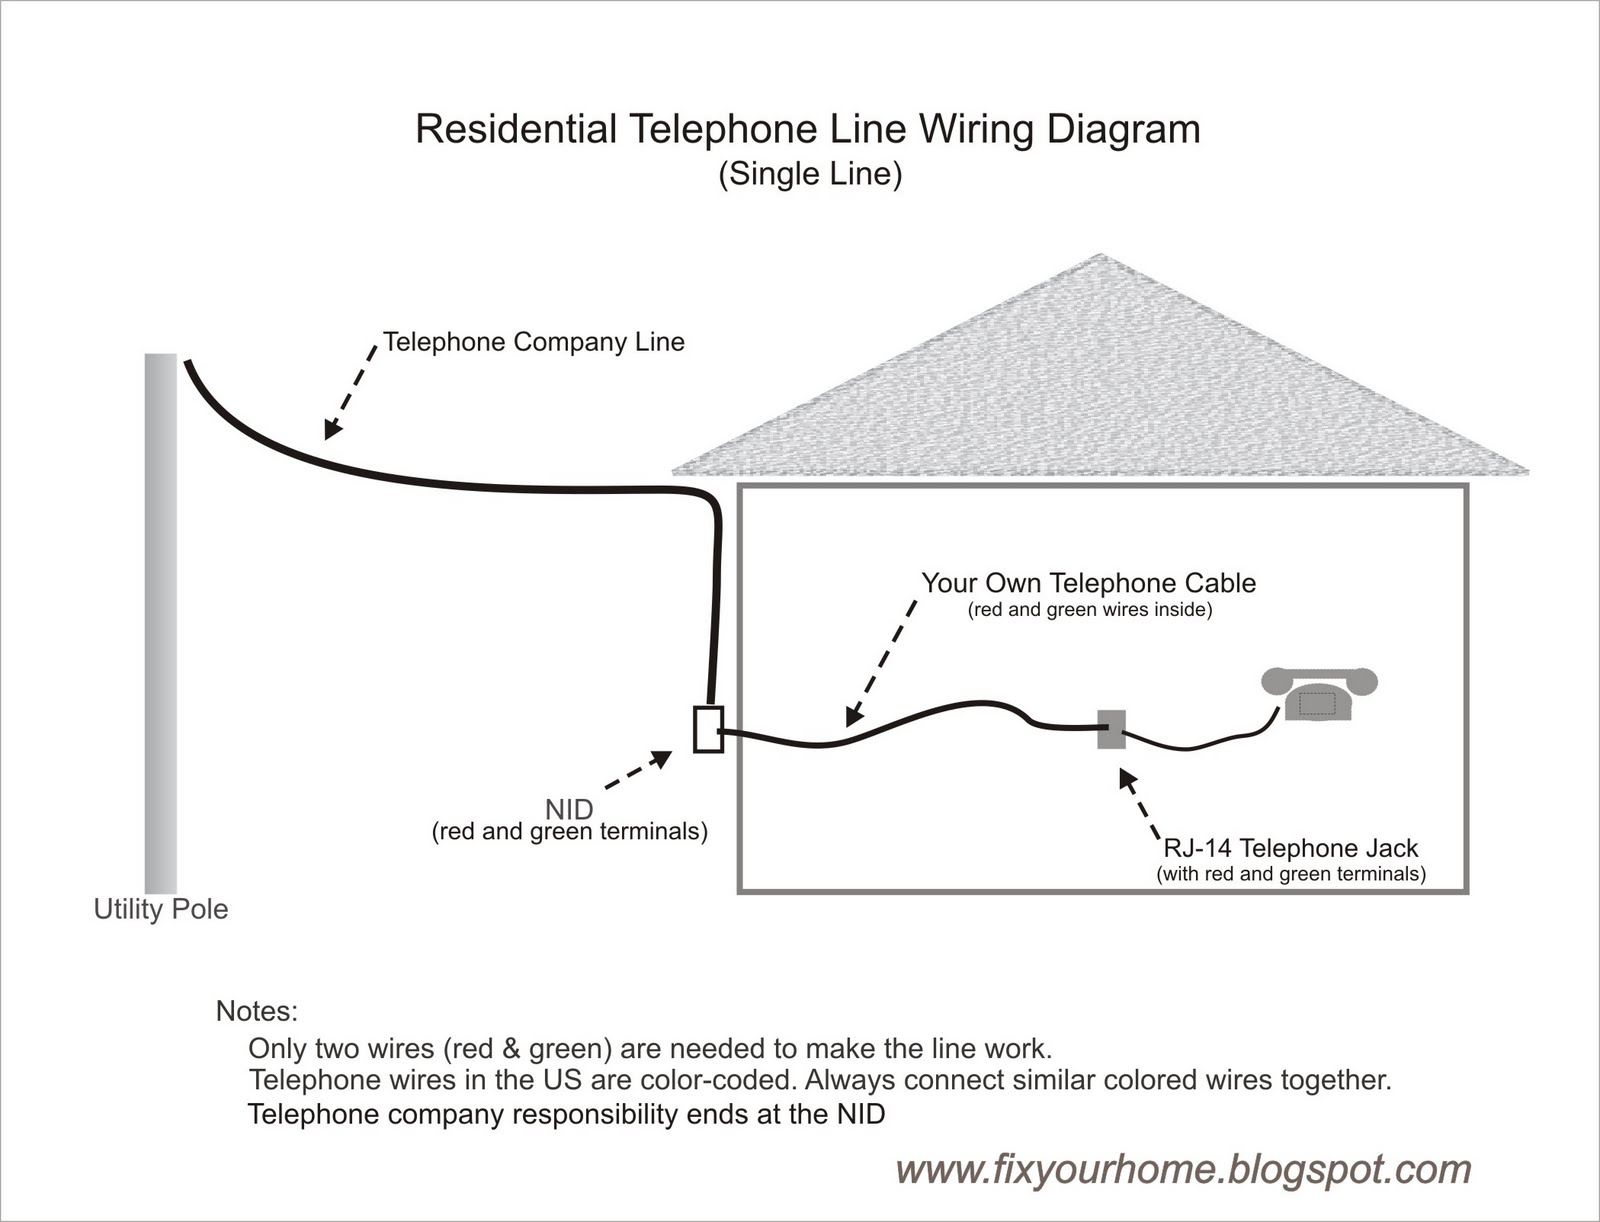 Fix Your Home: How To Wire Your Own Telephone Line